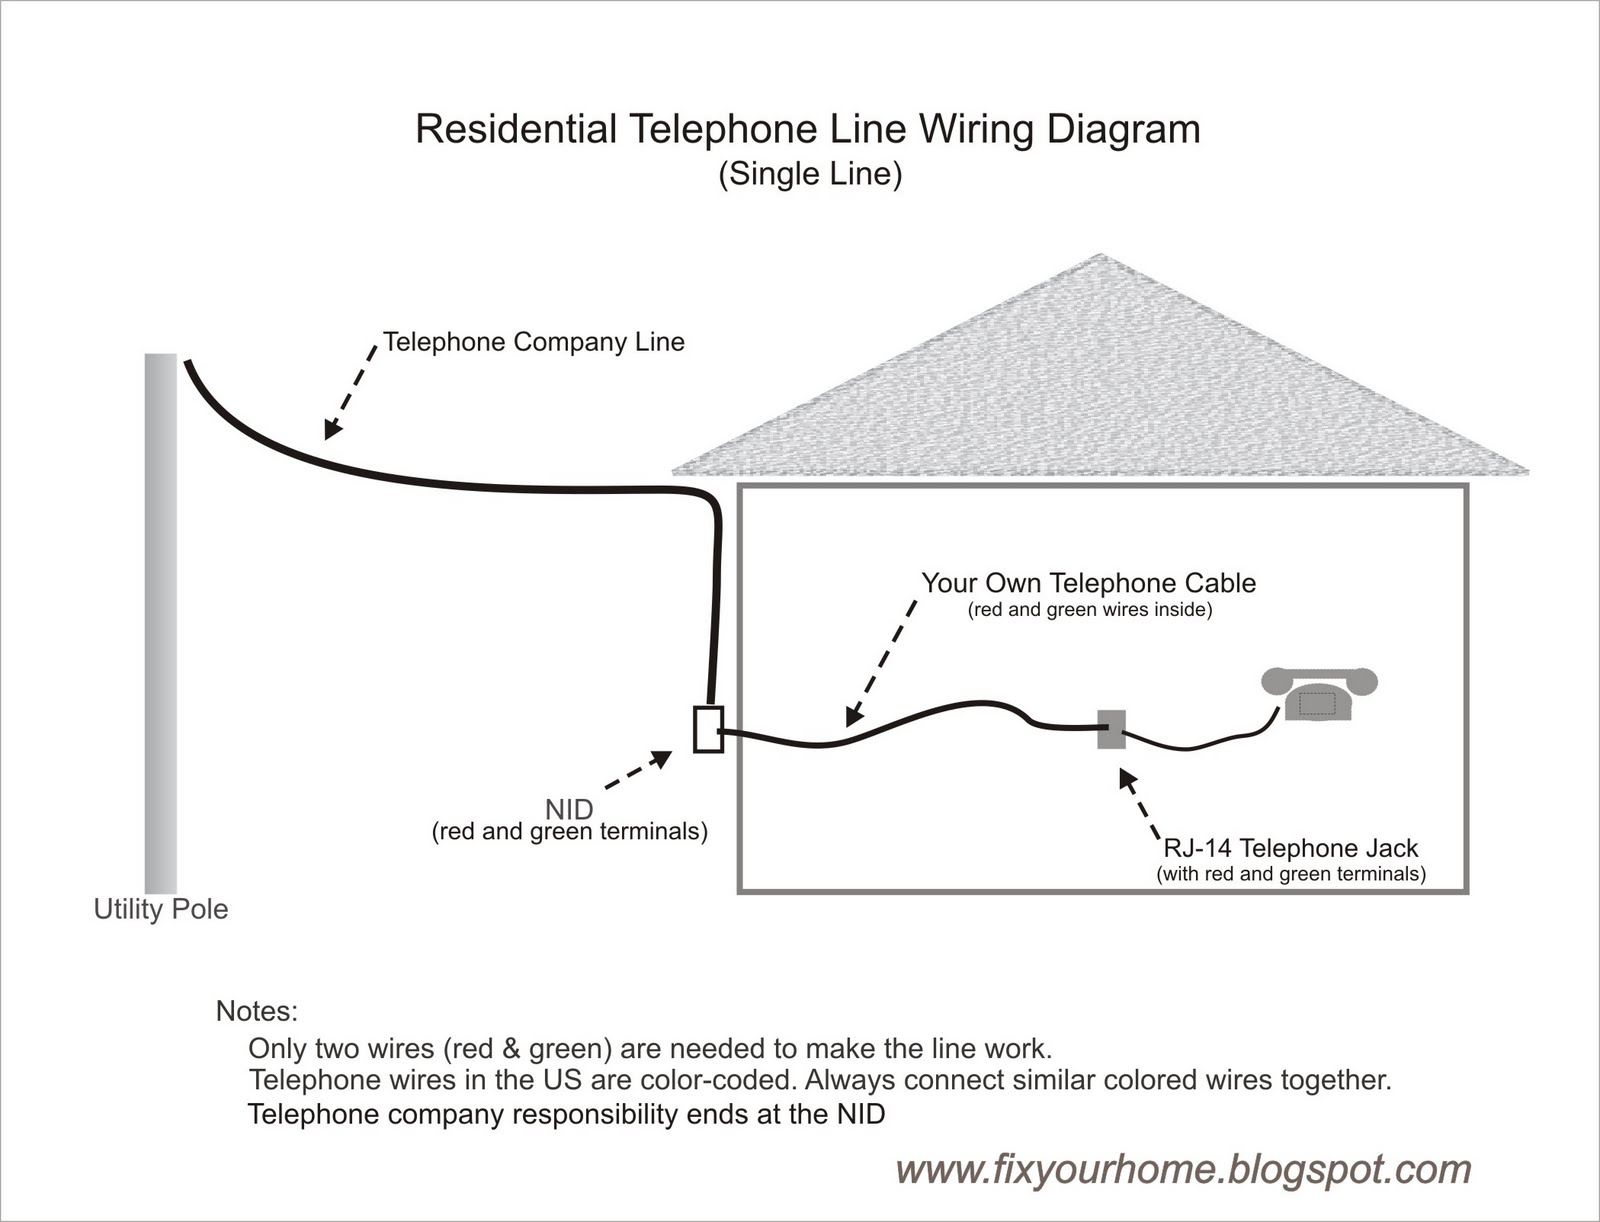 Fix Your Home: How To Wire Your Own Telephone Line